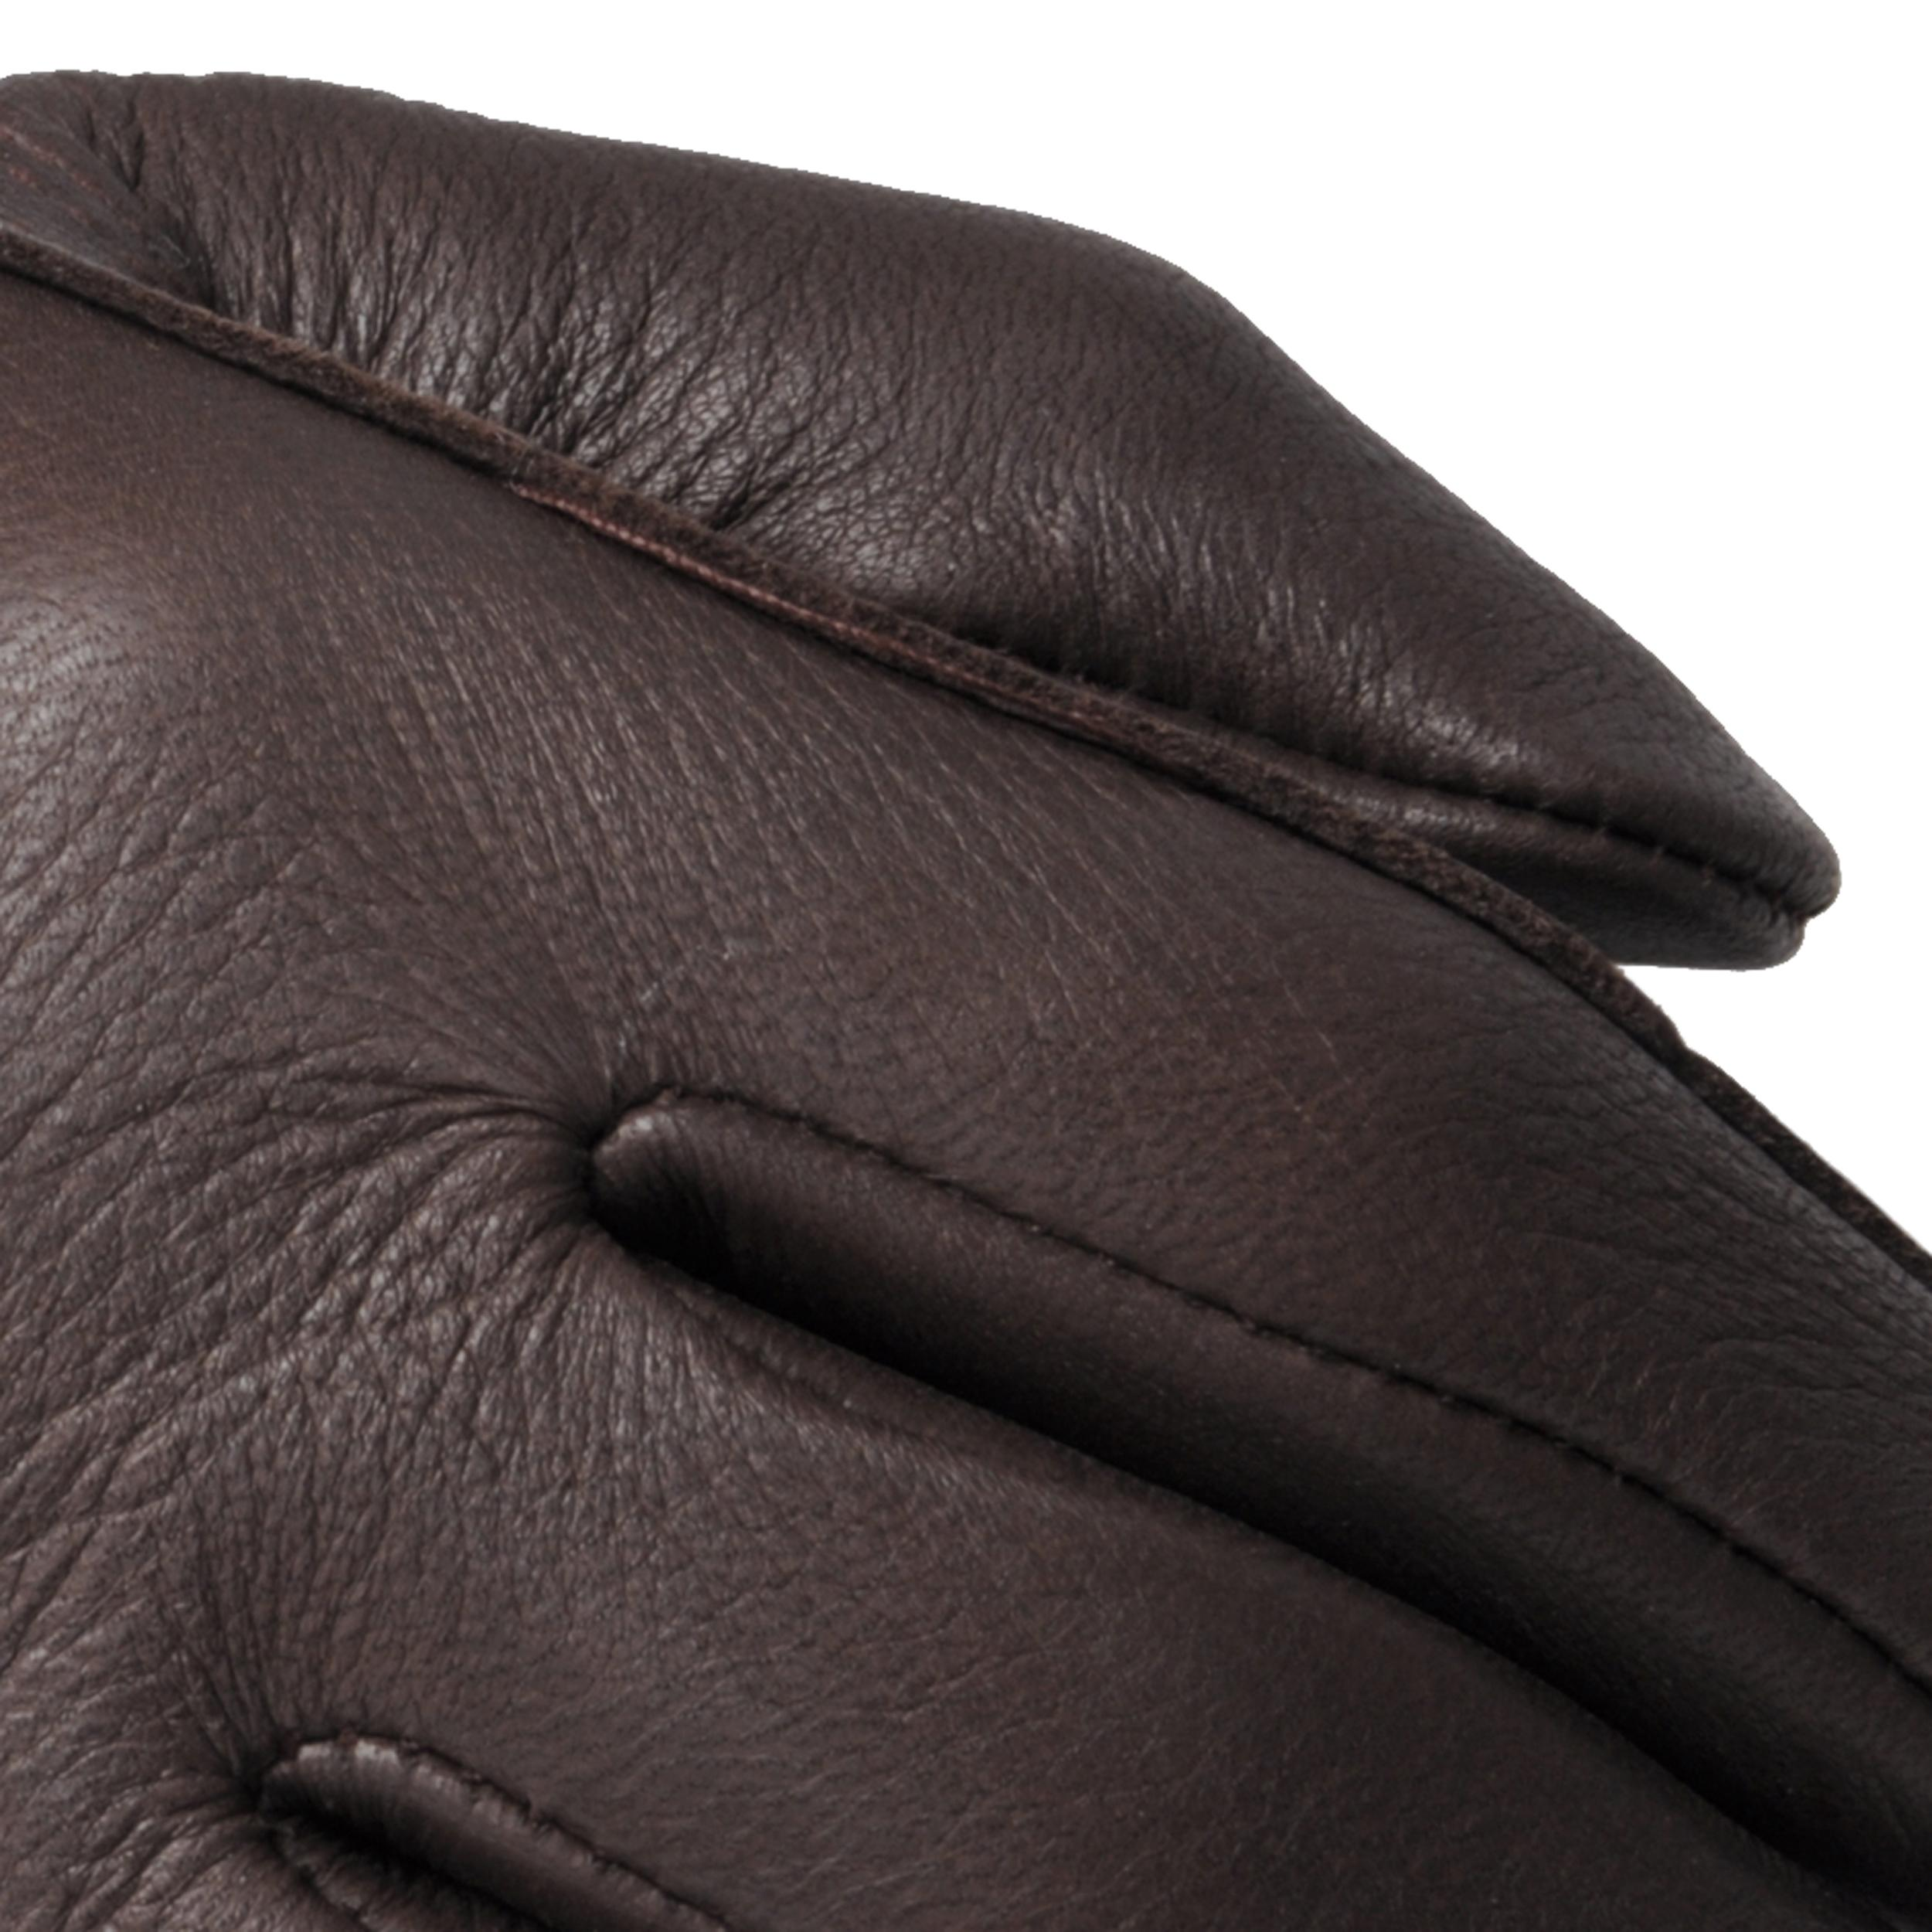 Daxx Men's Top Grain Deerskin Leather Gloves